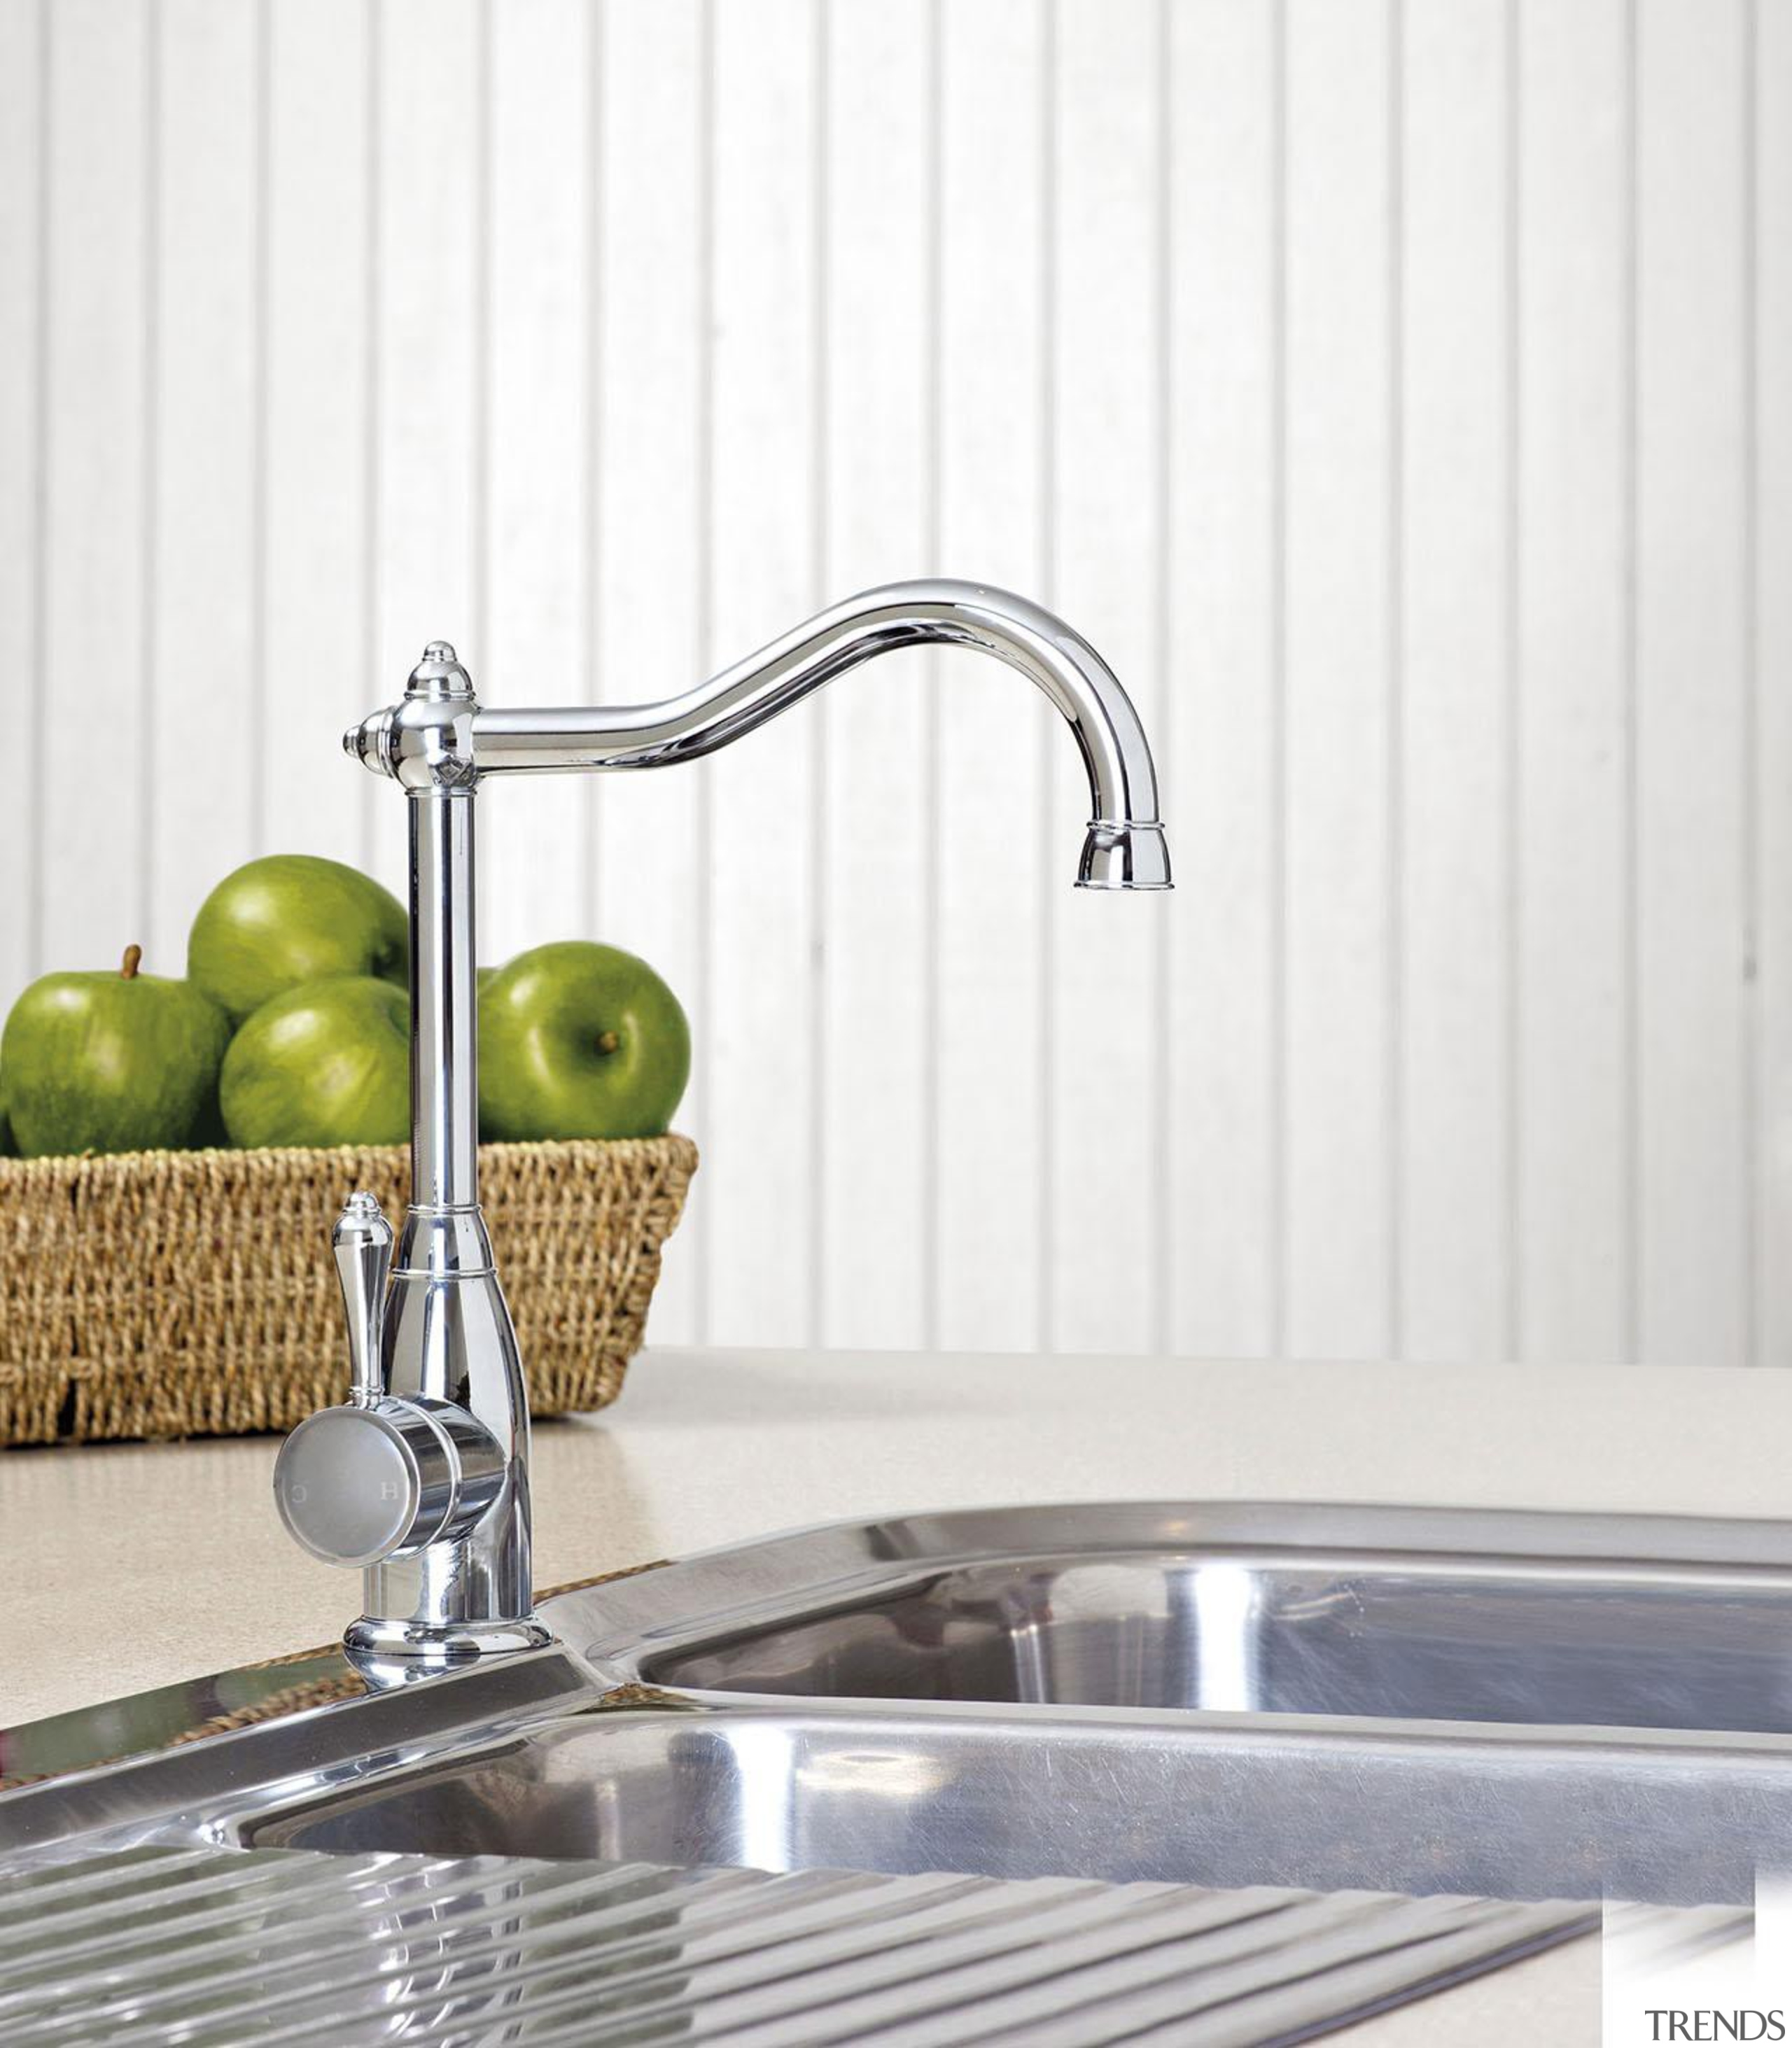 hr738 harmony sink mixer - Our Phoenix Product plumbing fixture, product, product design, sink, tap, white